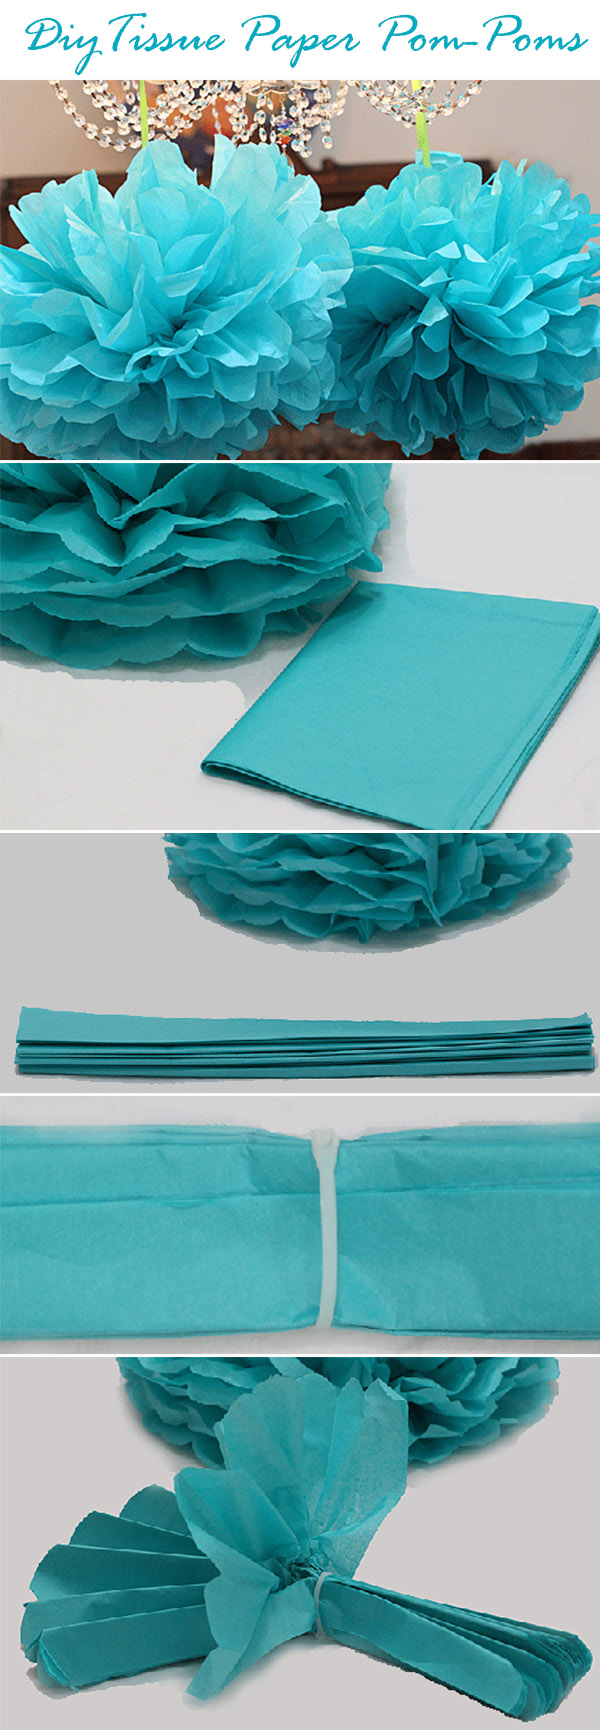 diy tissue paper pom poms wedding flower ideas